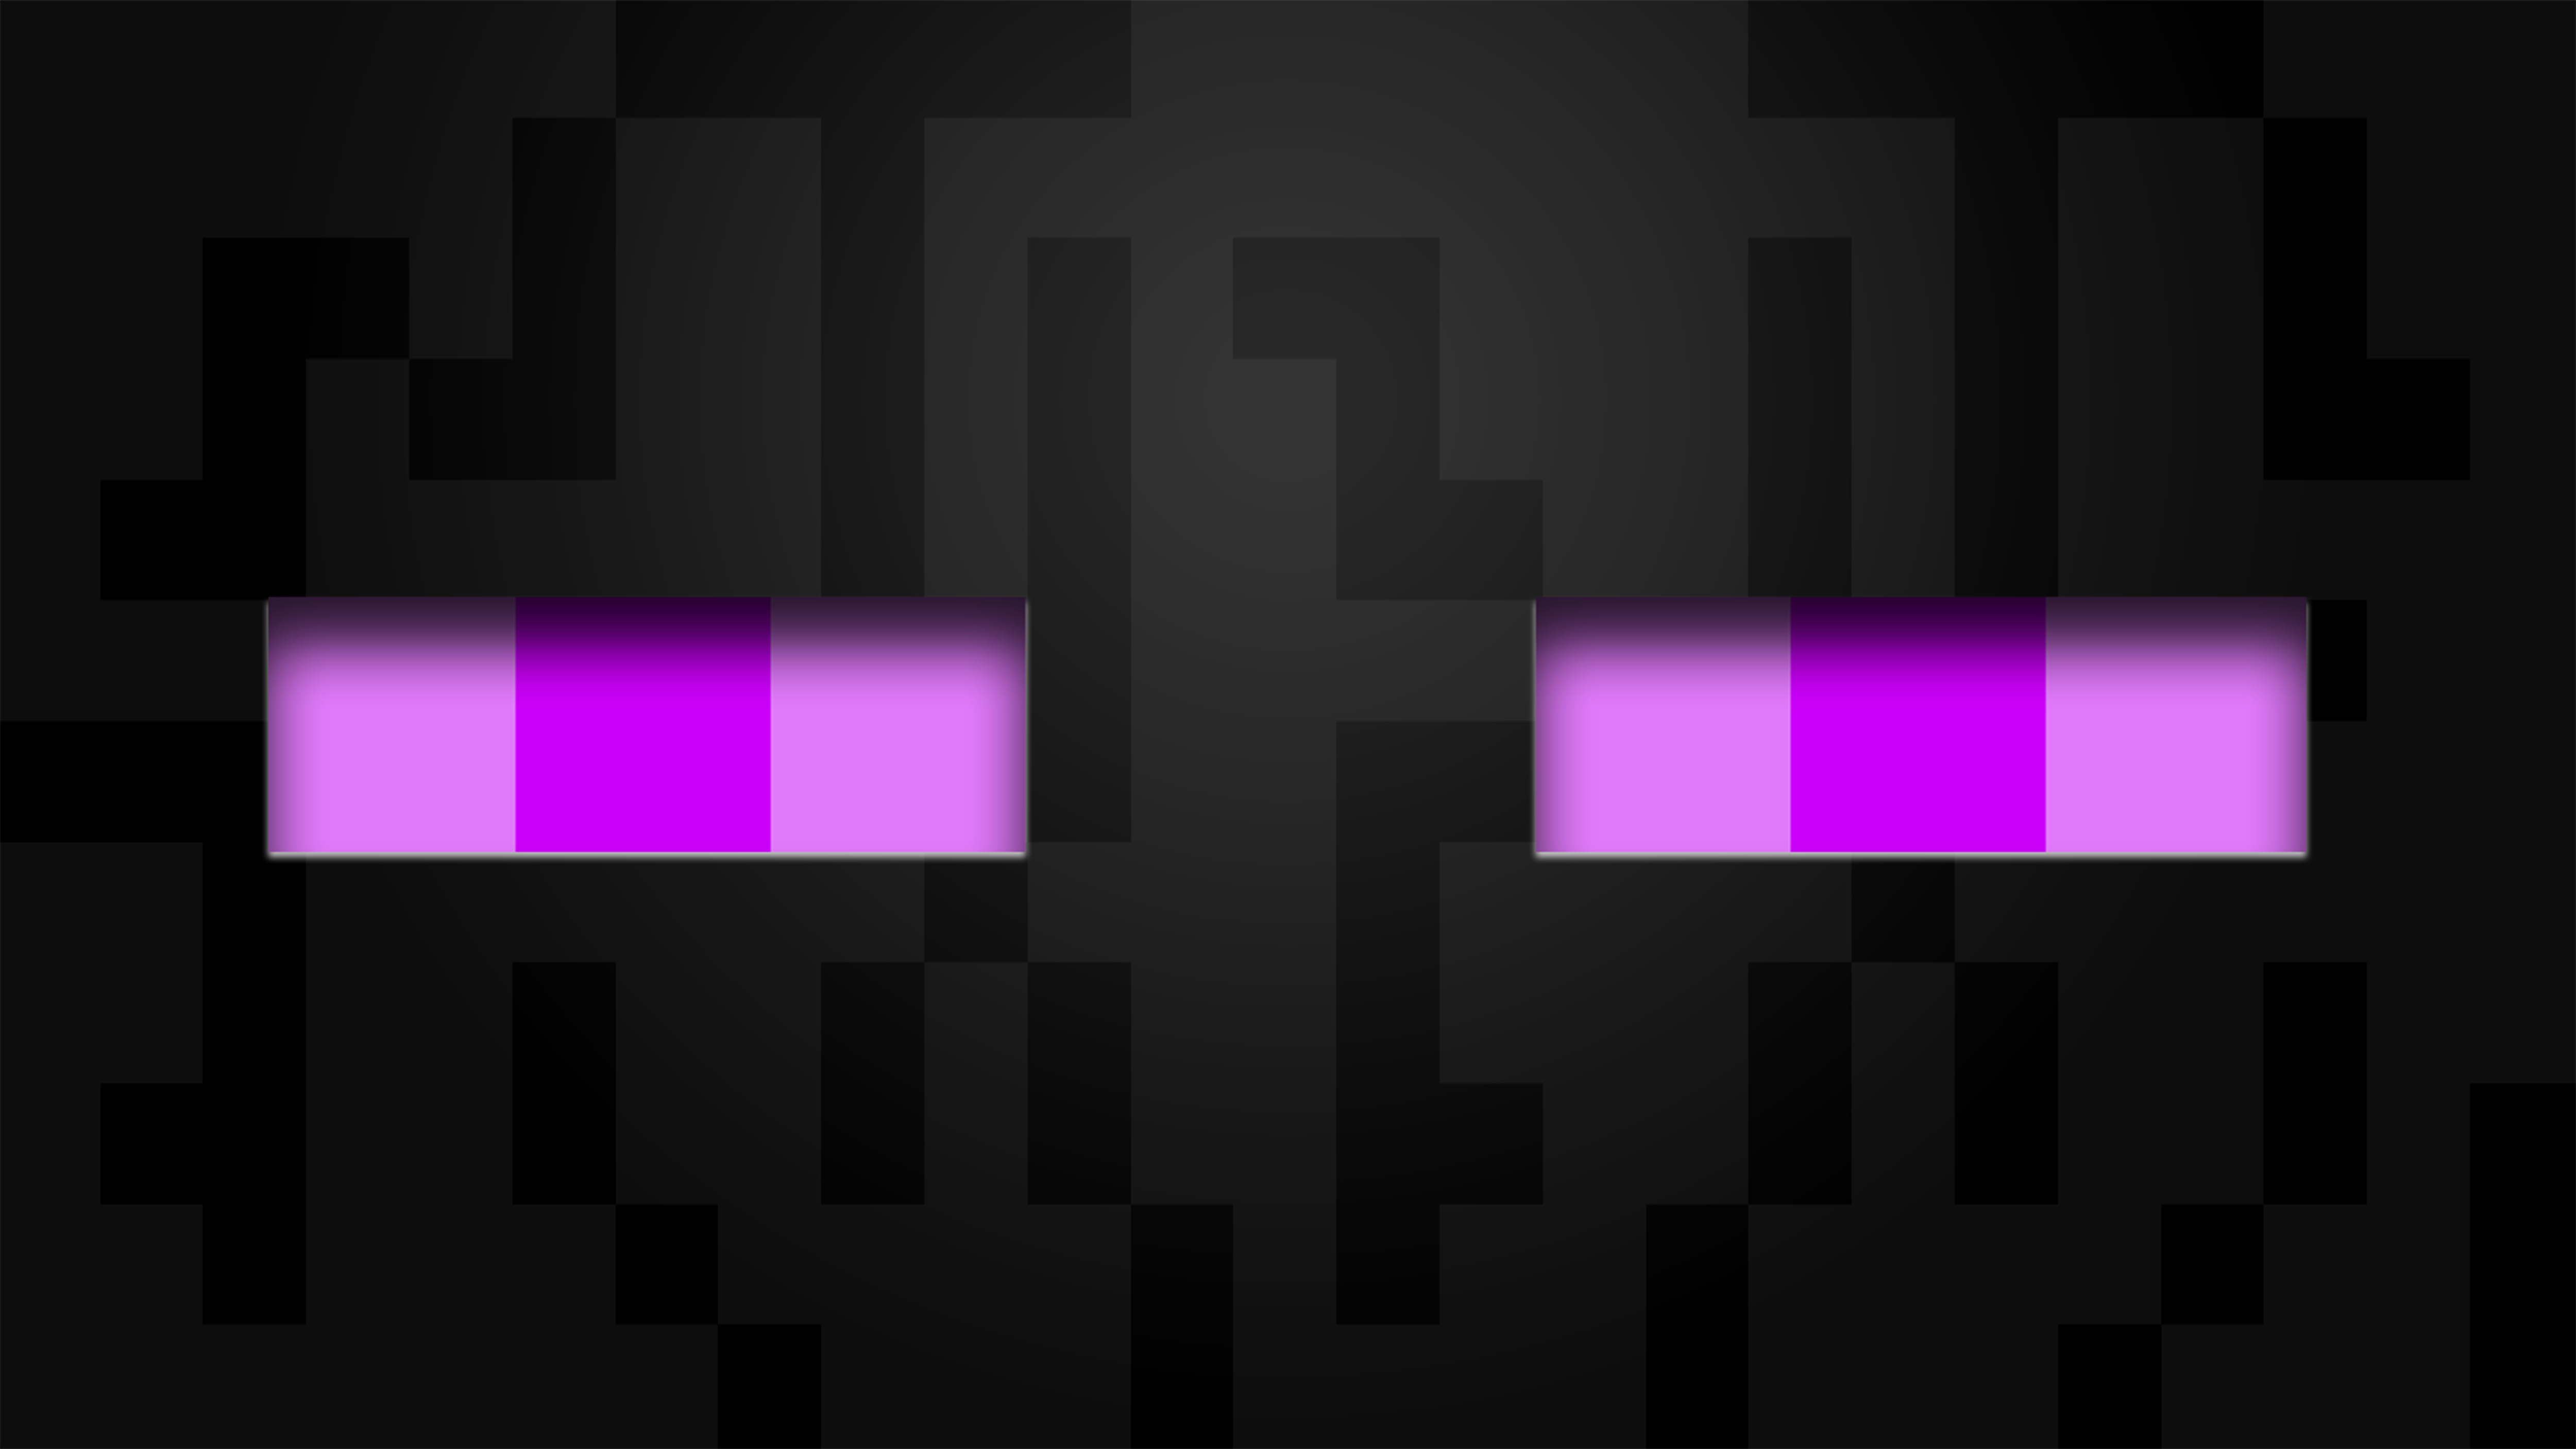 enderman minecraft wallpaper wolf - photo #17